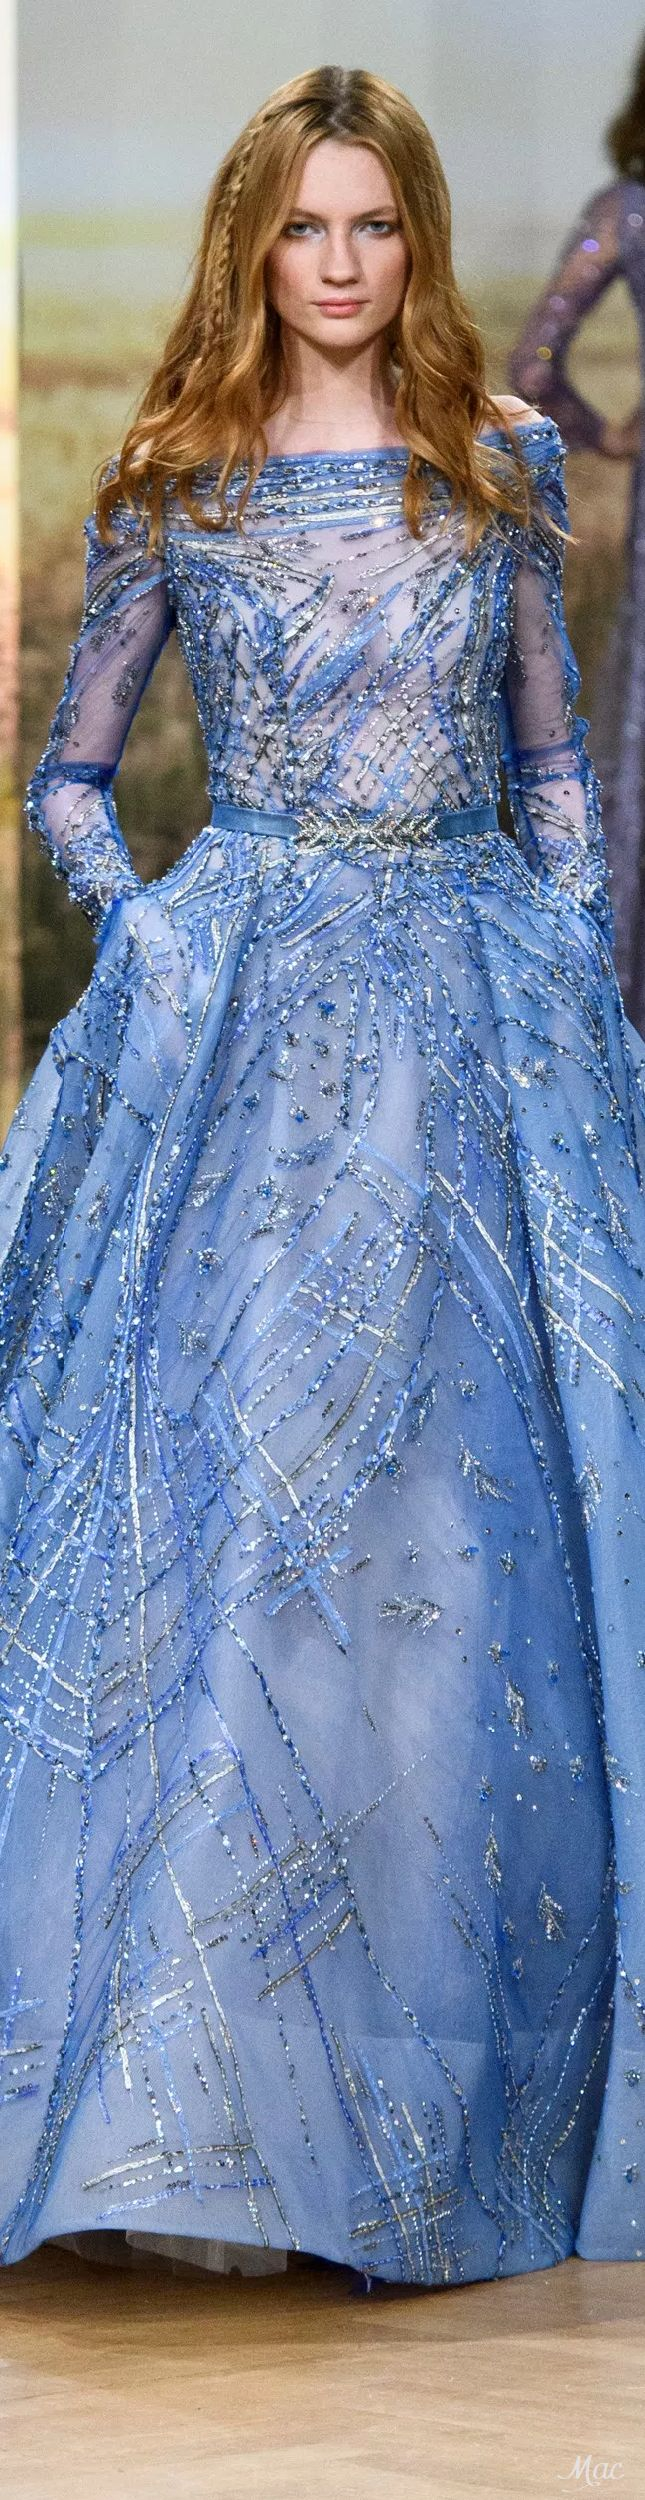 45666 best the gown boutique images on pinterest high for Haute couture boutique